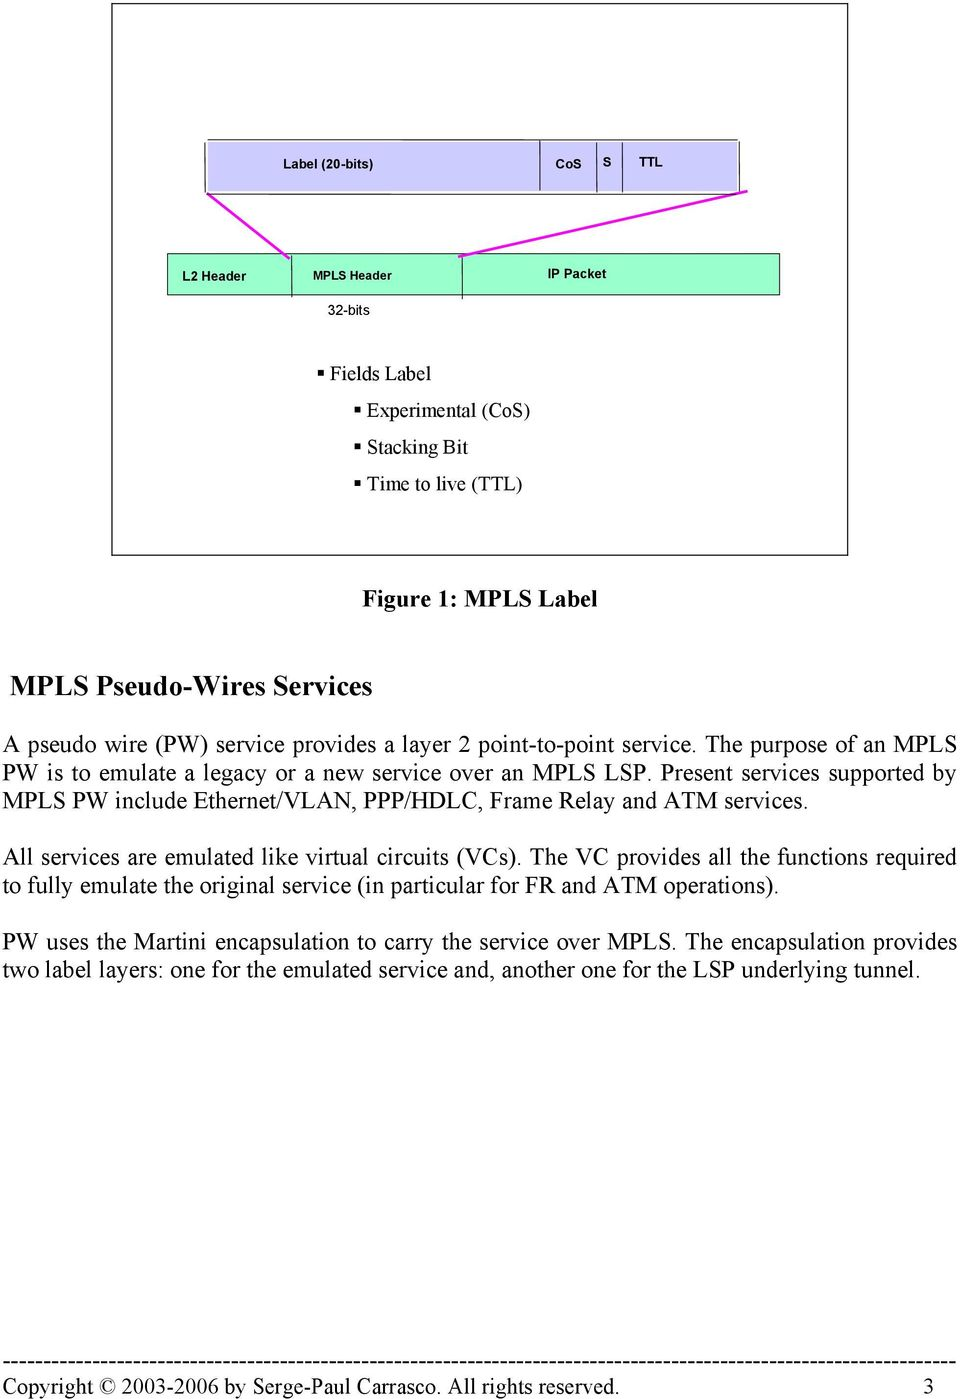 Present services supported by MPLS PW include Ethernet/VLAN, PPP/HDLC, Frame Relay and ATM services. All services are emulated like virtual circuits (VCs).